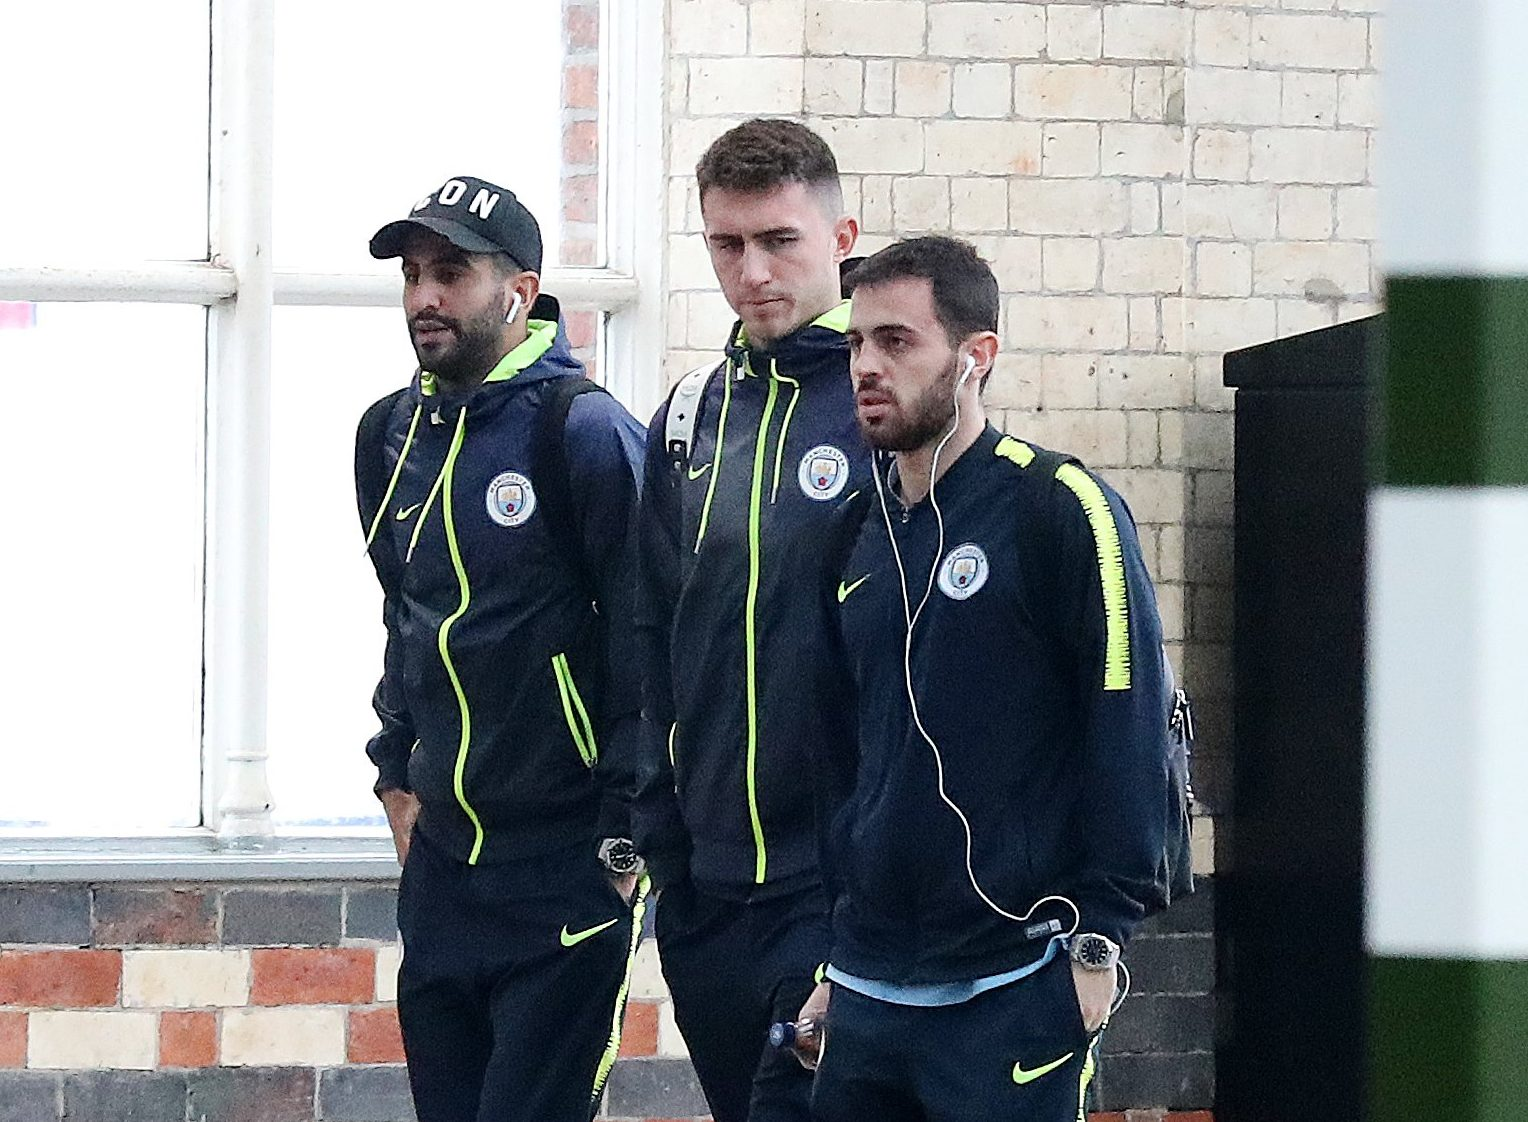 4.12.18???.. The Manchester City team get the train to Watford on Tuesday morning for their Premier League match at 8.00pm??????.. Riyad Mahrtez, Aymeric Laporte and Bernardo Silva.